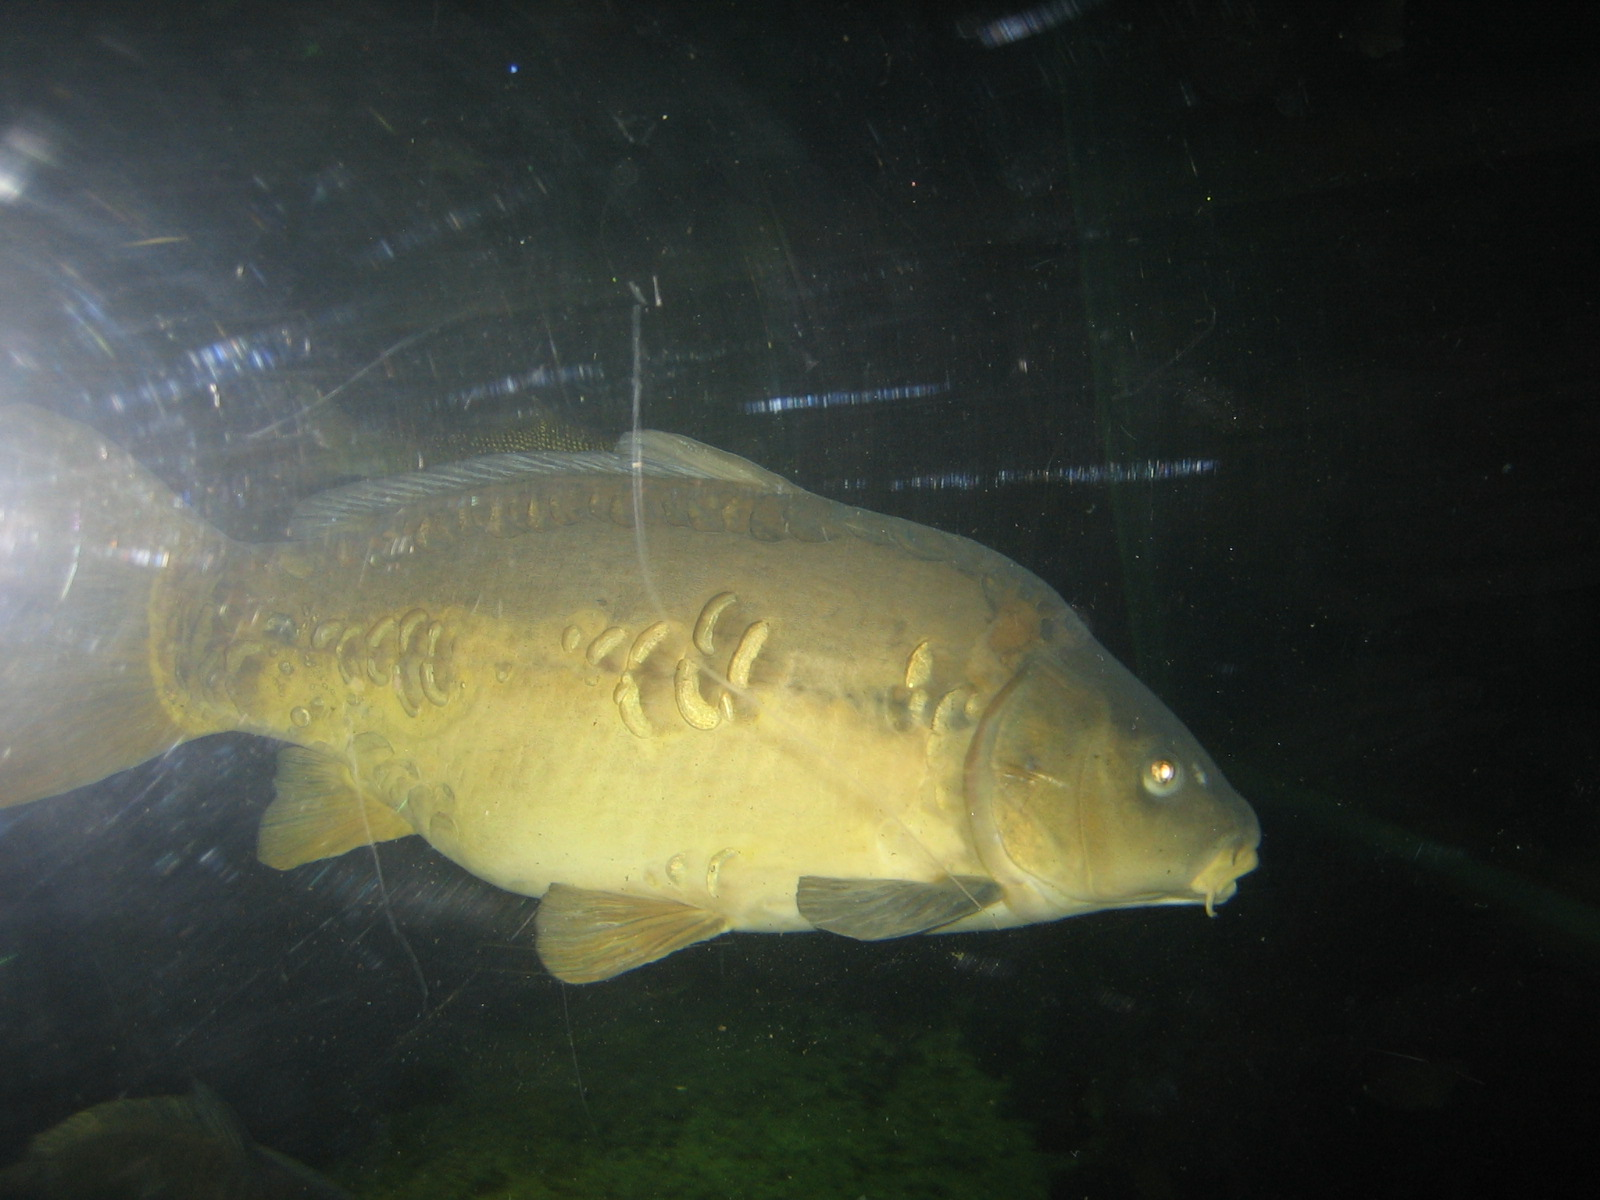 Photo shows a Carp Swimming Midwater Depth